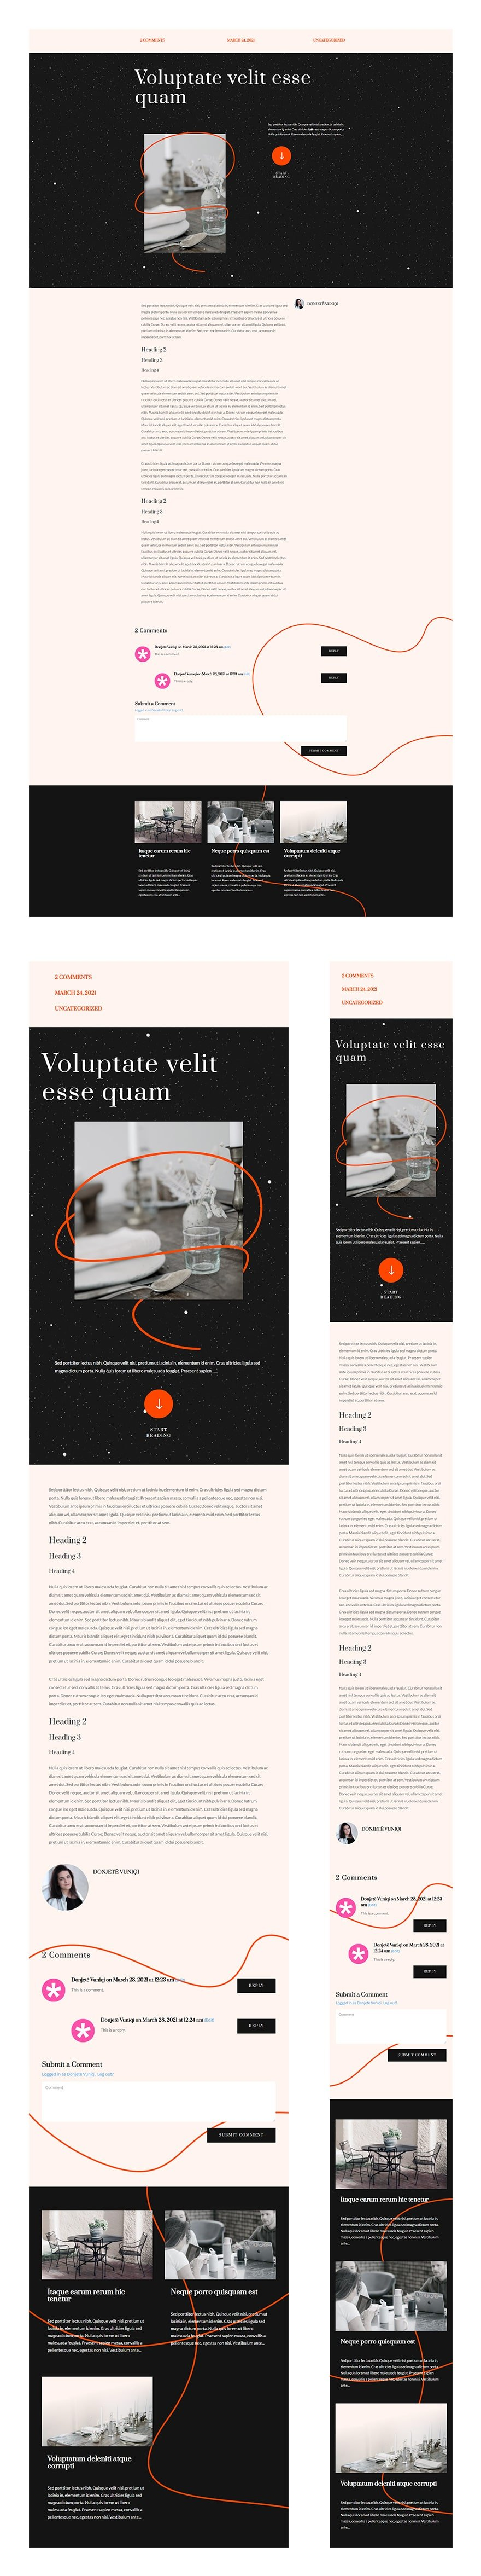 download-a-free-blog-post-template-for-divis-event-venue-layout-pack Download a FREE Blog Post Template for Divi's Event Venue Layout Pack